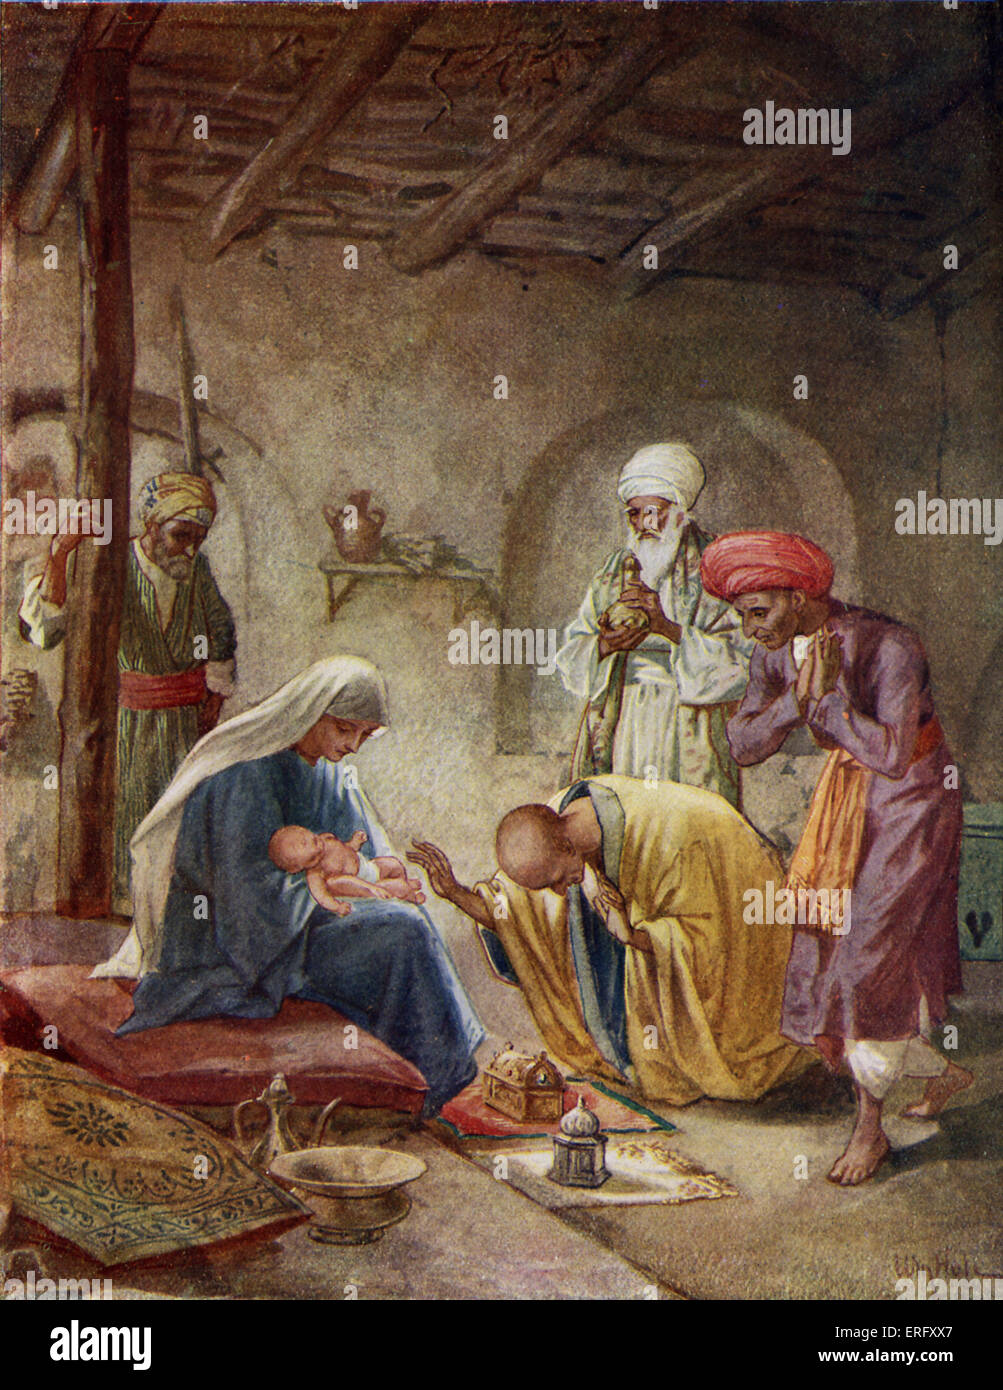 The Wise Men visit the baby Jesus 'And they came into the house and saw the young child with Mary his mother; - Stock Image